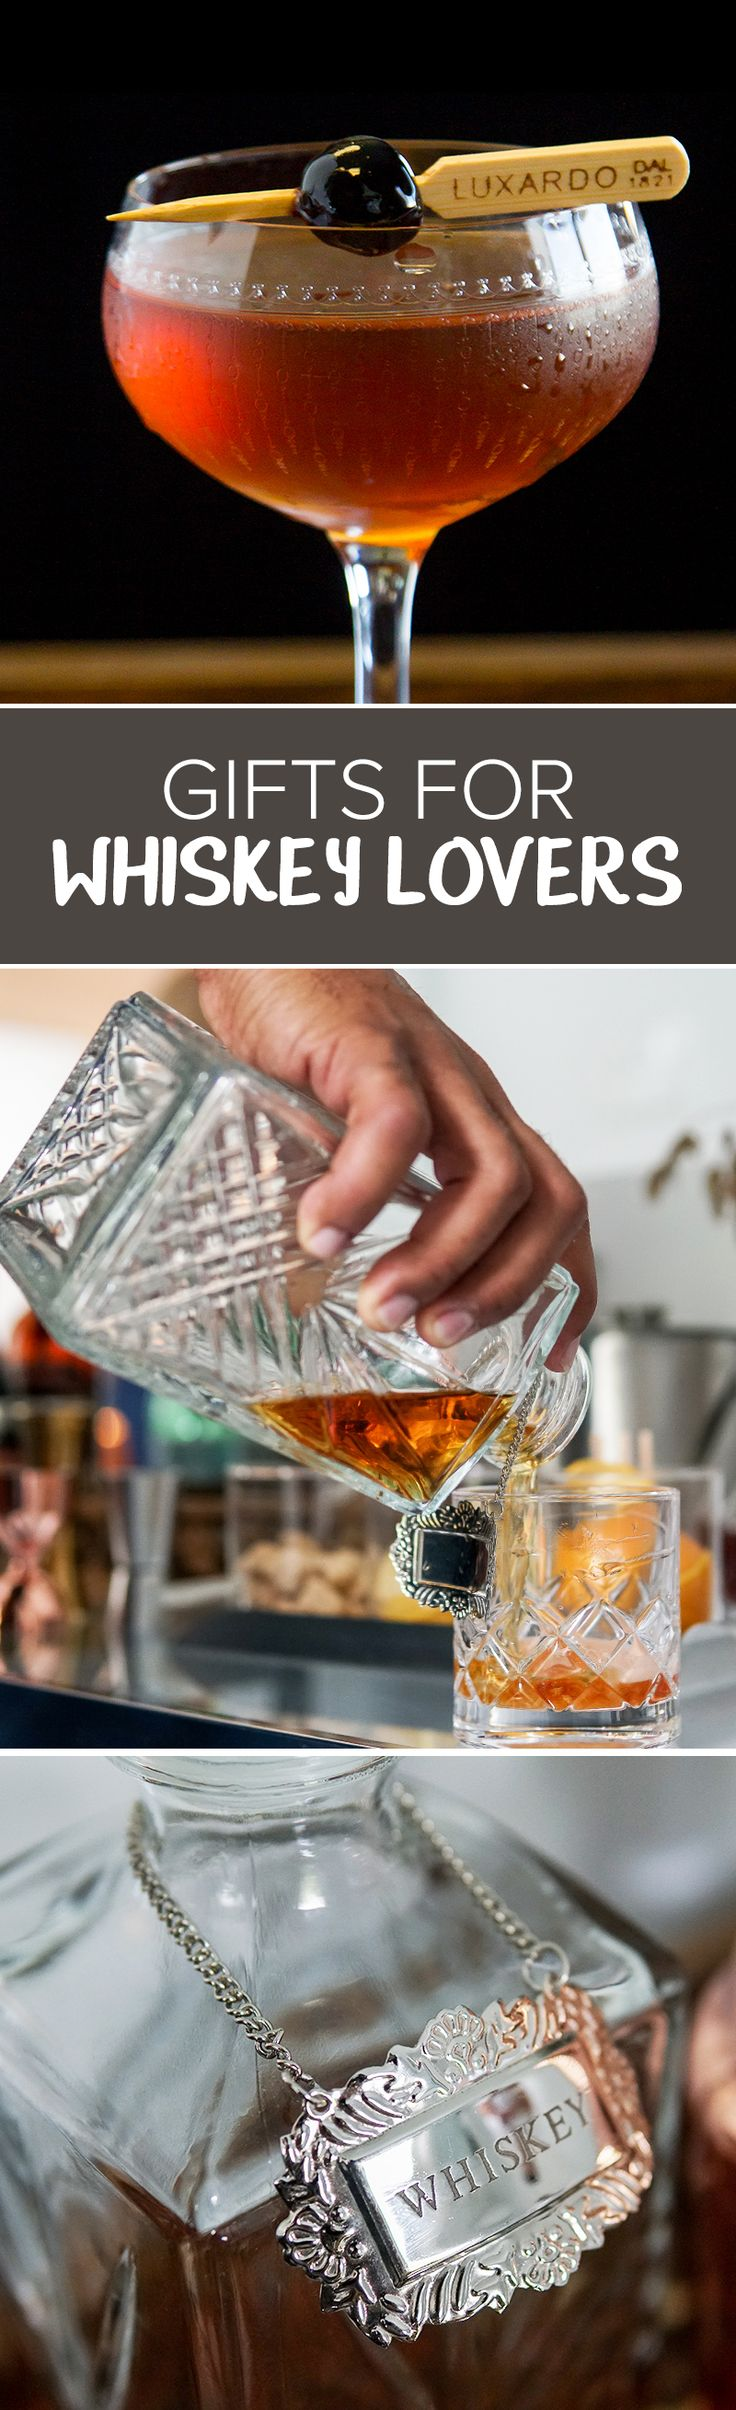 If you're in search of a perfect gift for someone who loves nothing so much as a delicious dram of fine scotch or whiskey, we've got you covered. We've got tons of whiskey gifts that can help make the sipping experience even more enjoyable.